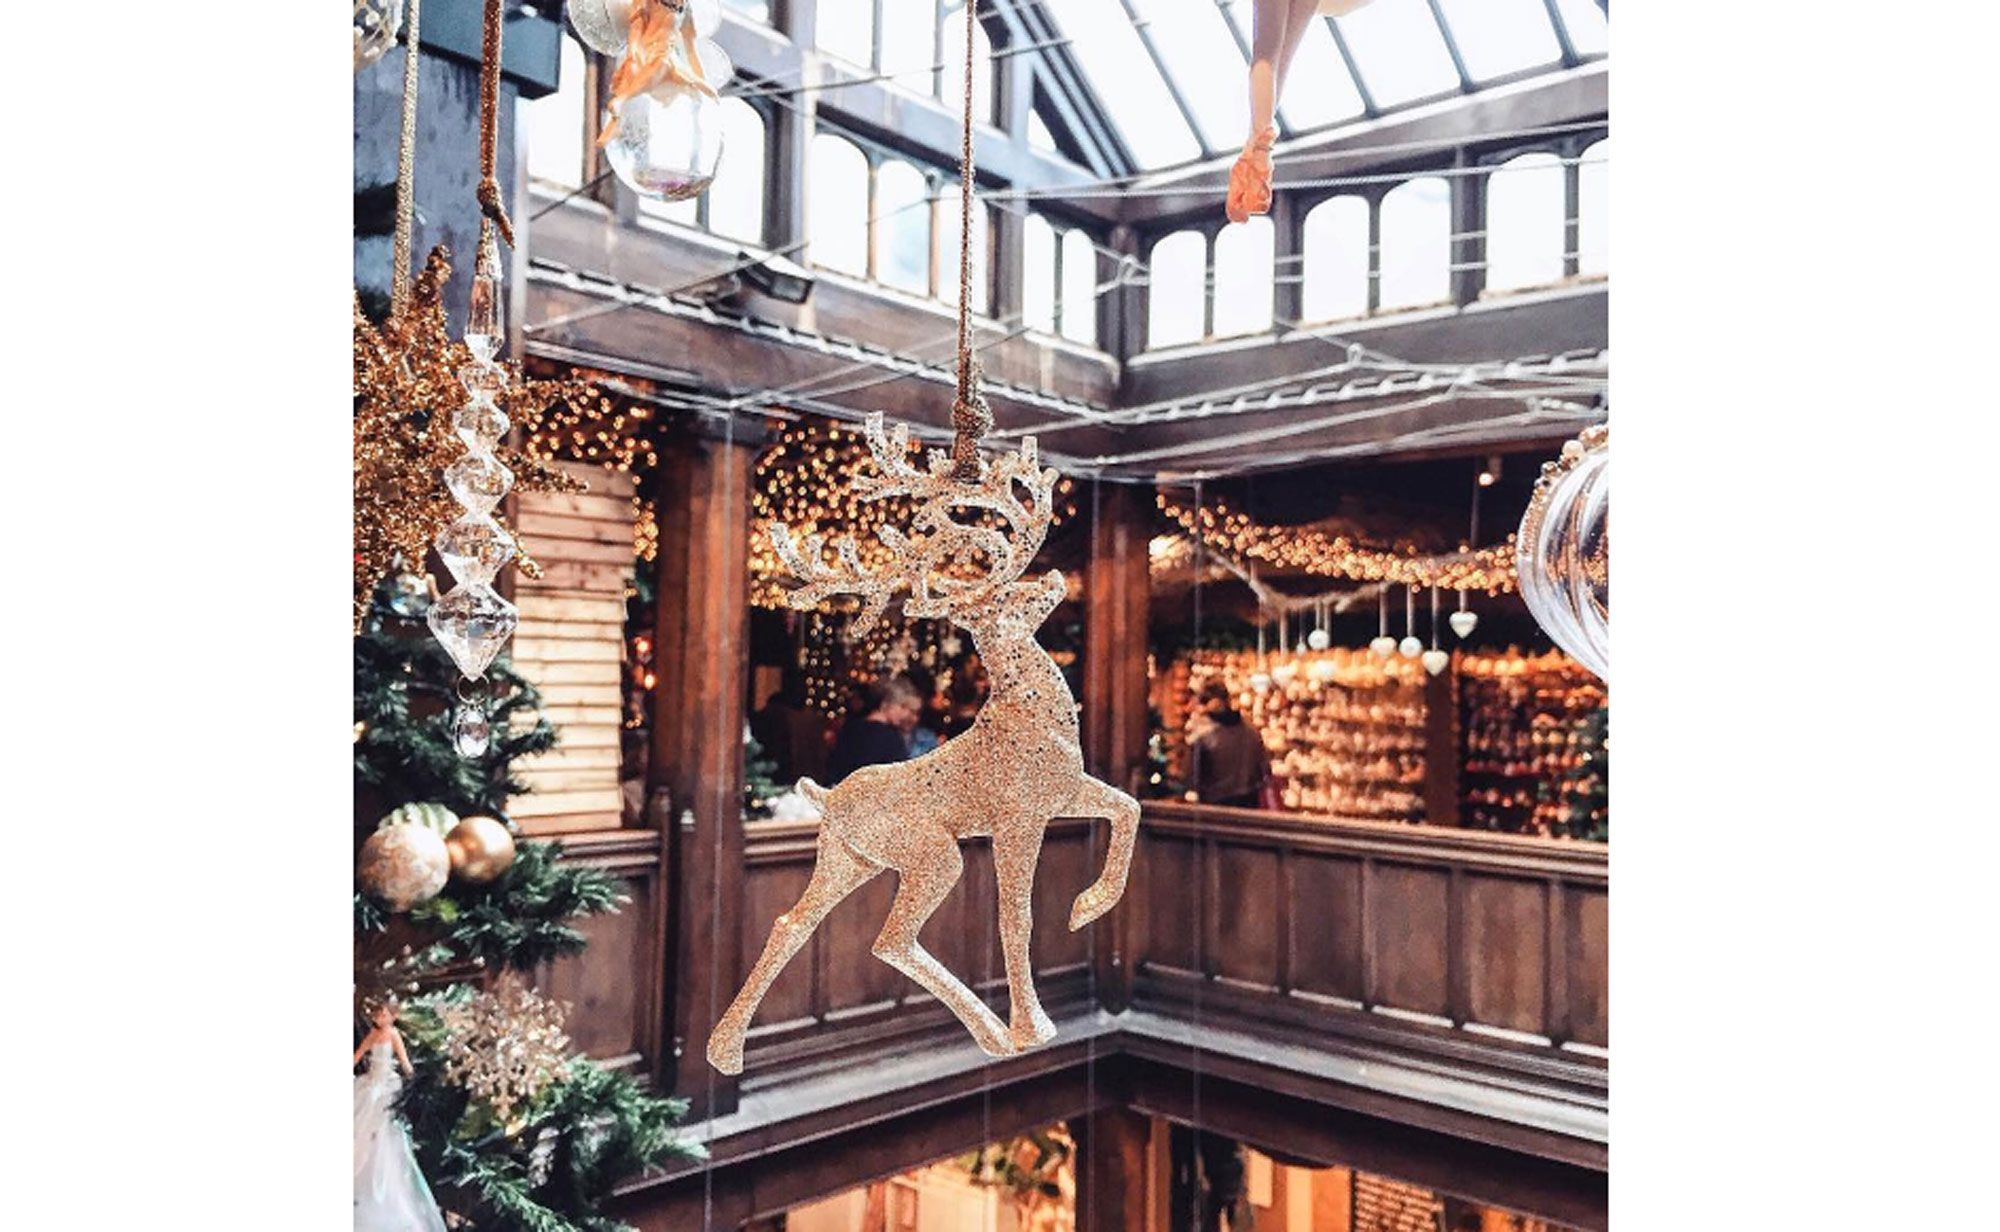 How to Spend the Perfect Festive Weekend in London